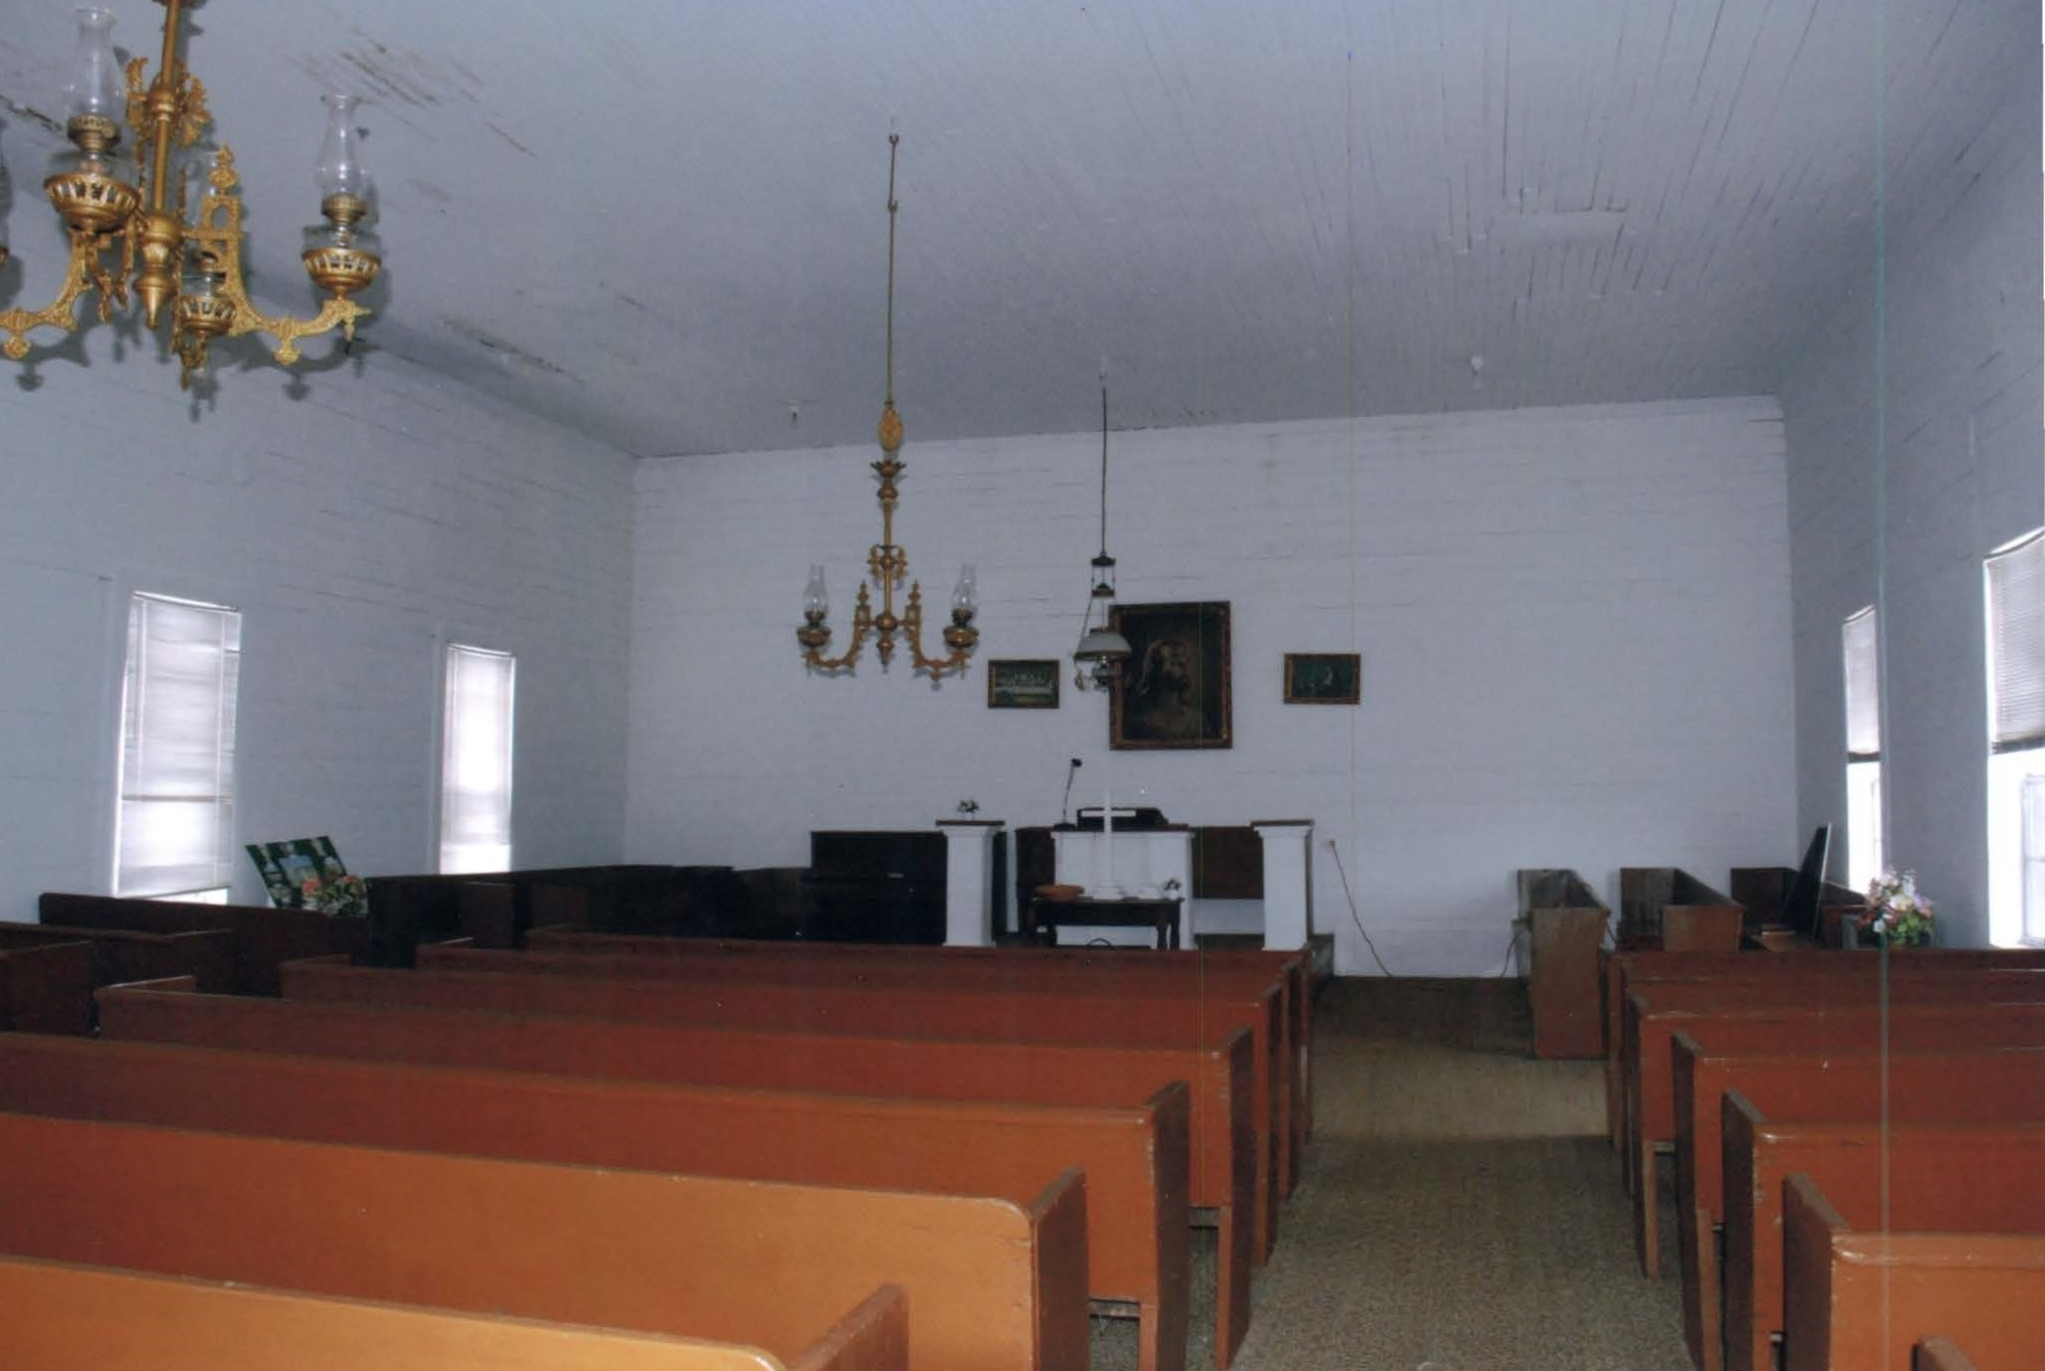 The interior of the church facing the northside of the building.